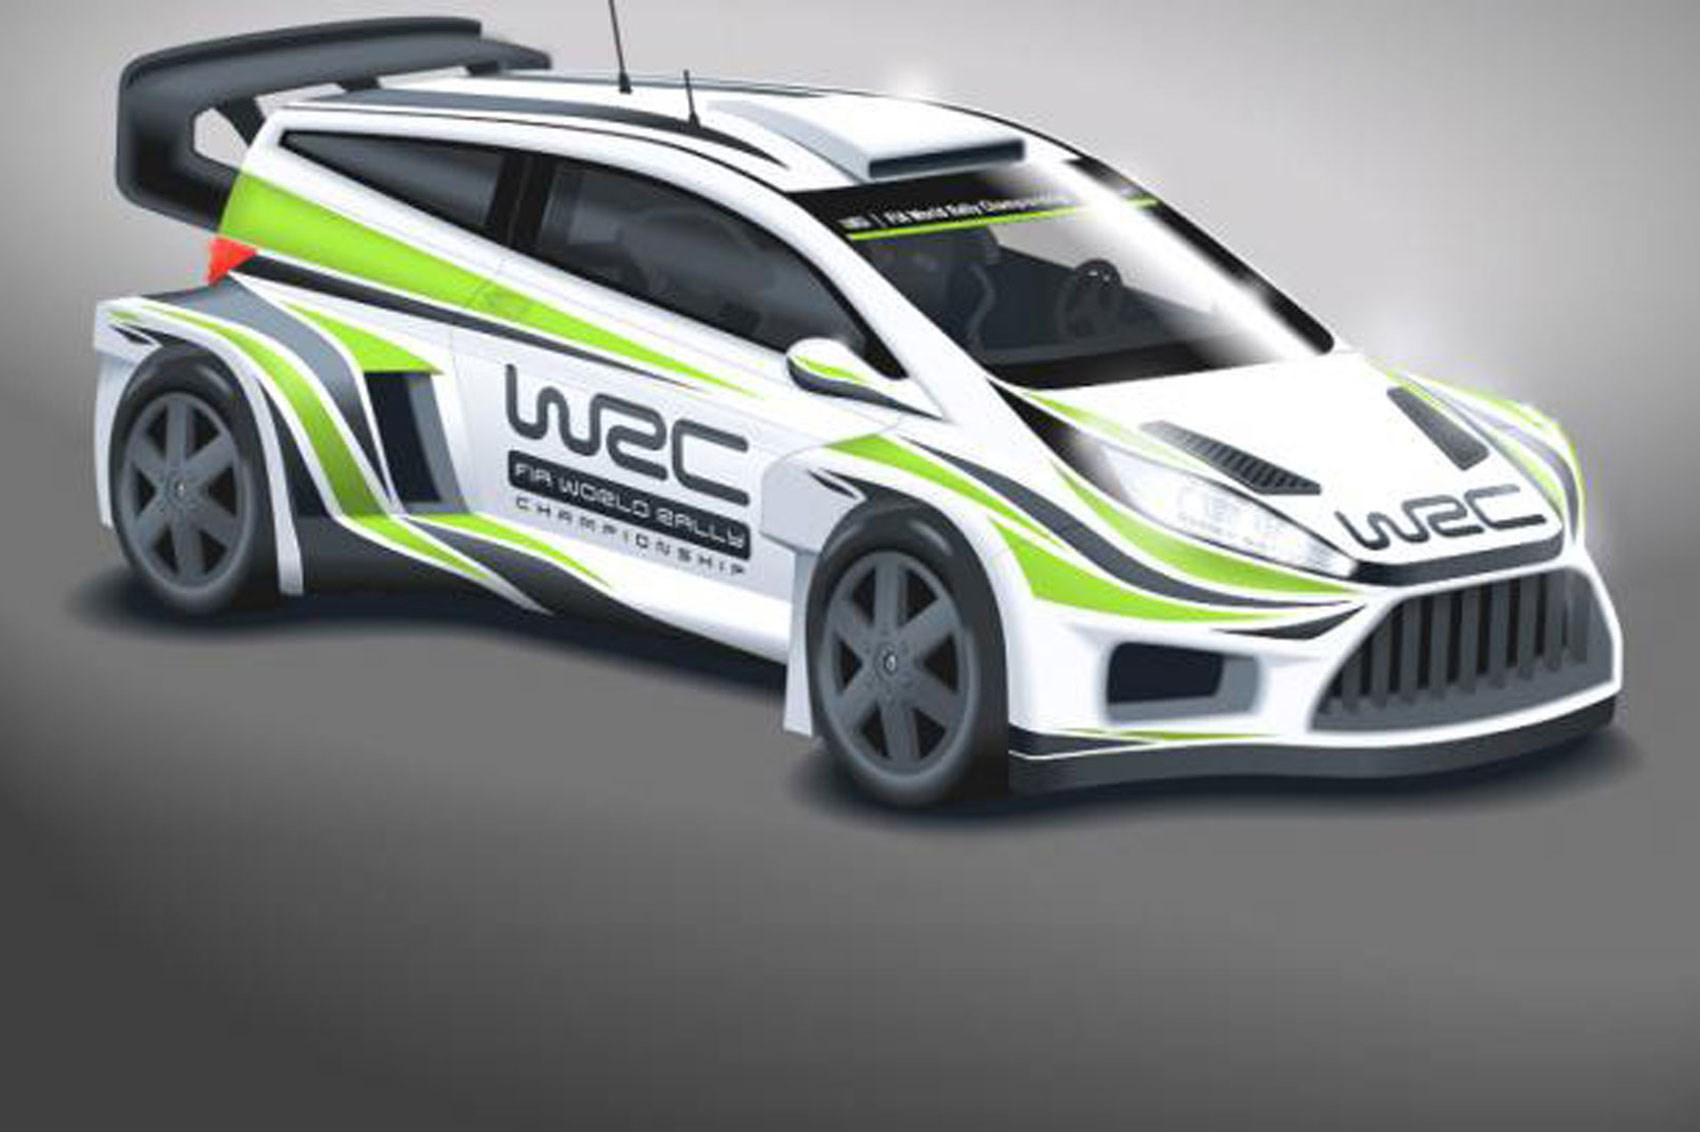 Ultrablogus  Pleasant Wild New Look For Wrc Cars In  By Car Magazine With Gorgeous Wrc Cars Will Get Wider Bodies Bigger Wings And More Power For  With Endearing E M Interior Also New Audi A Interior In Addition Zonda R Interior And  Audi S Interior As Well As Interior Range Rover Evoque Additionally C Class Interior  From Carmagazinecouk With Ultrablogus  Gorgeous Wild New Look For Wrc Cars In  By Car Magazine With Endearing Wrc Cars Will Get Wider Bodies Bigger Wings And More Power For  And Pleasant E M Interior Also New Audi A Interior In Addition Zonda R Interior From Carmagazinecouk